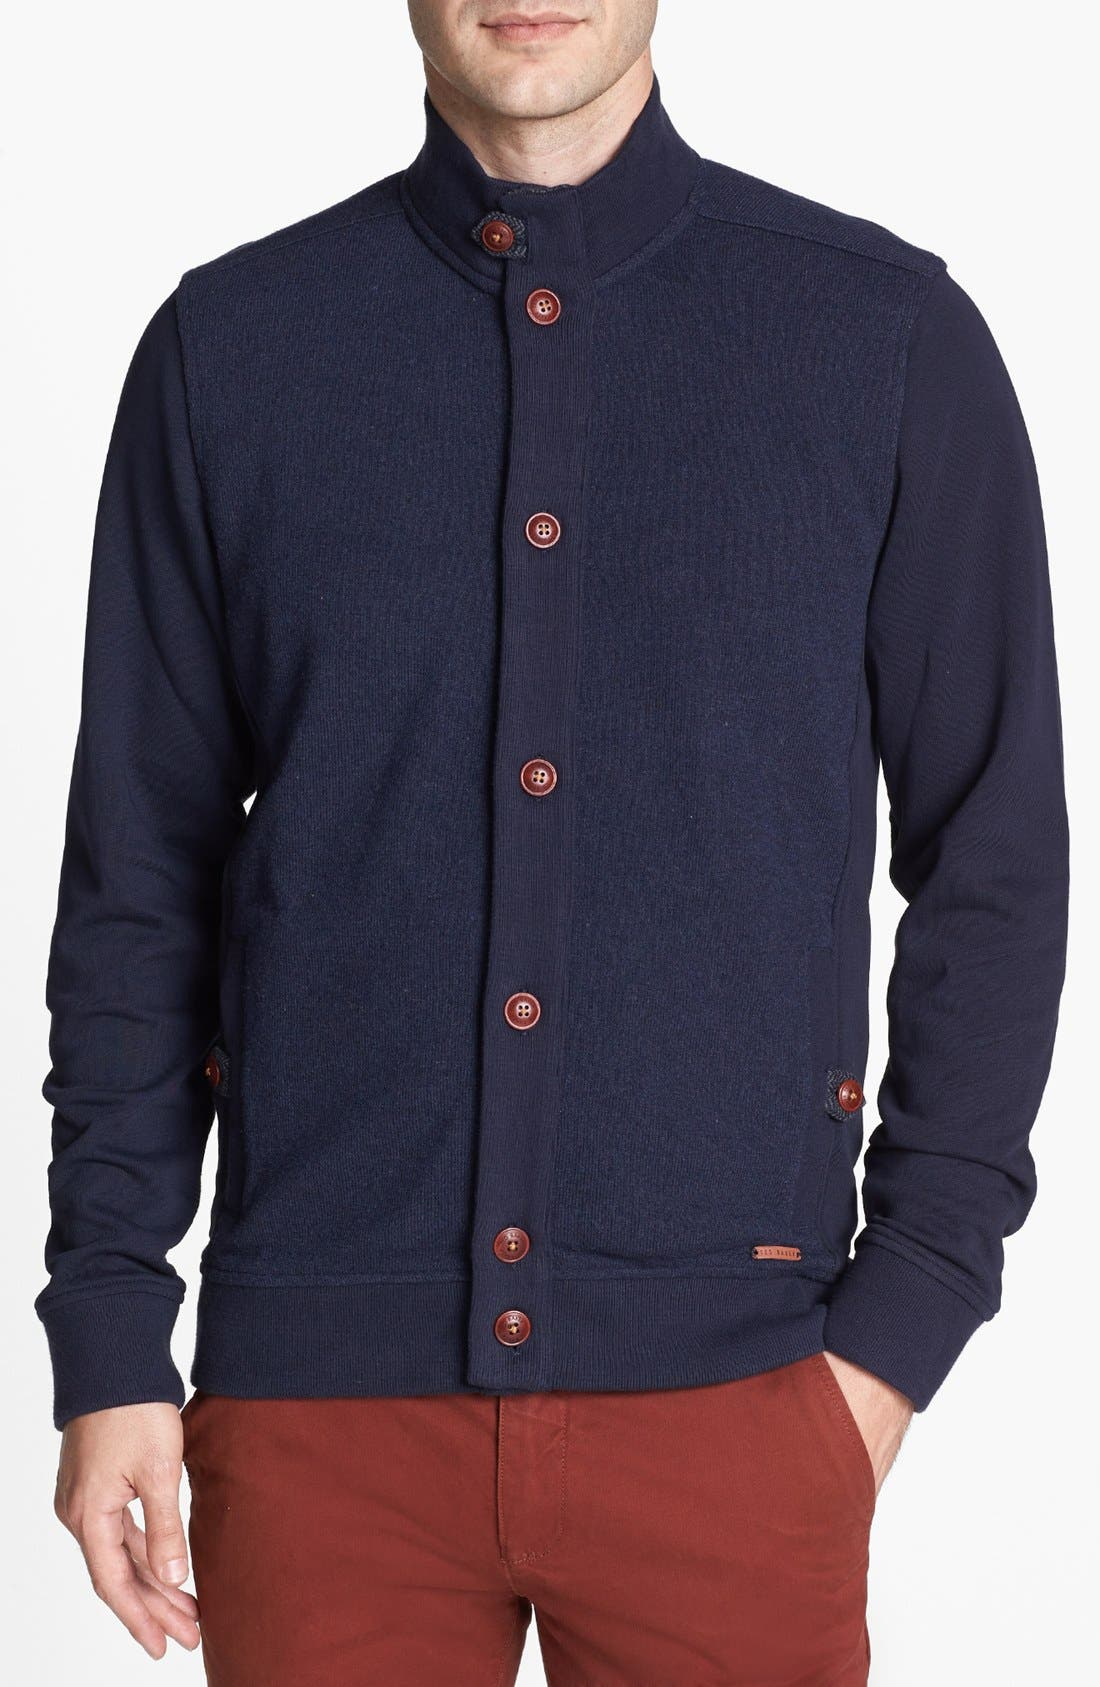 Main Image - Ted Baker London 'Doolan' Jersey Cardigan